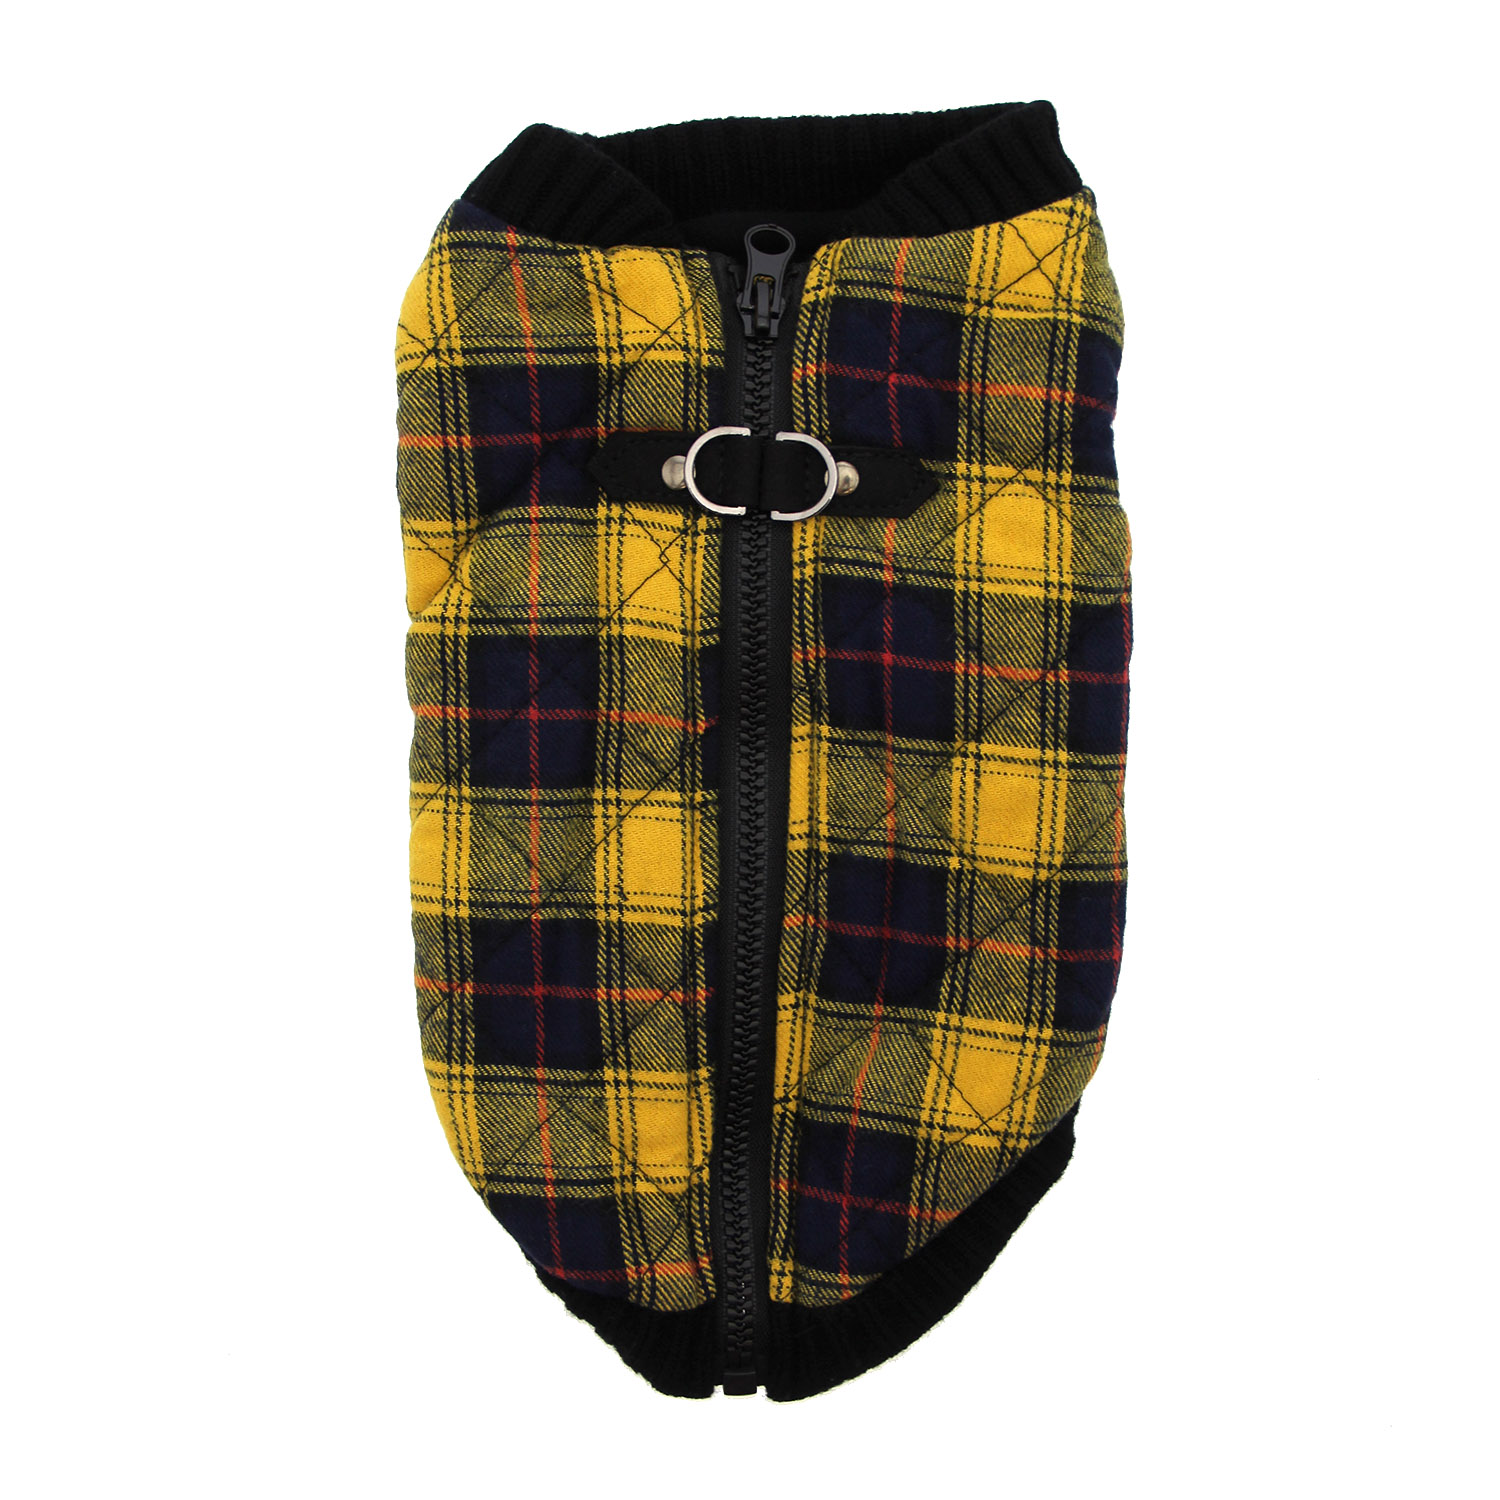 Fashion Bomber Check Dog Vest by Gooby - Yellow